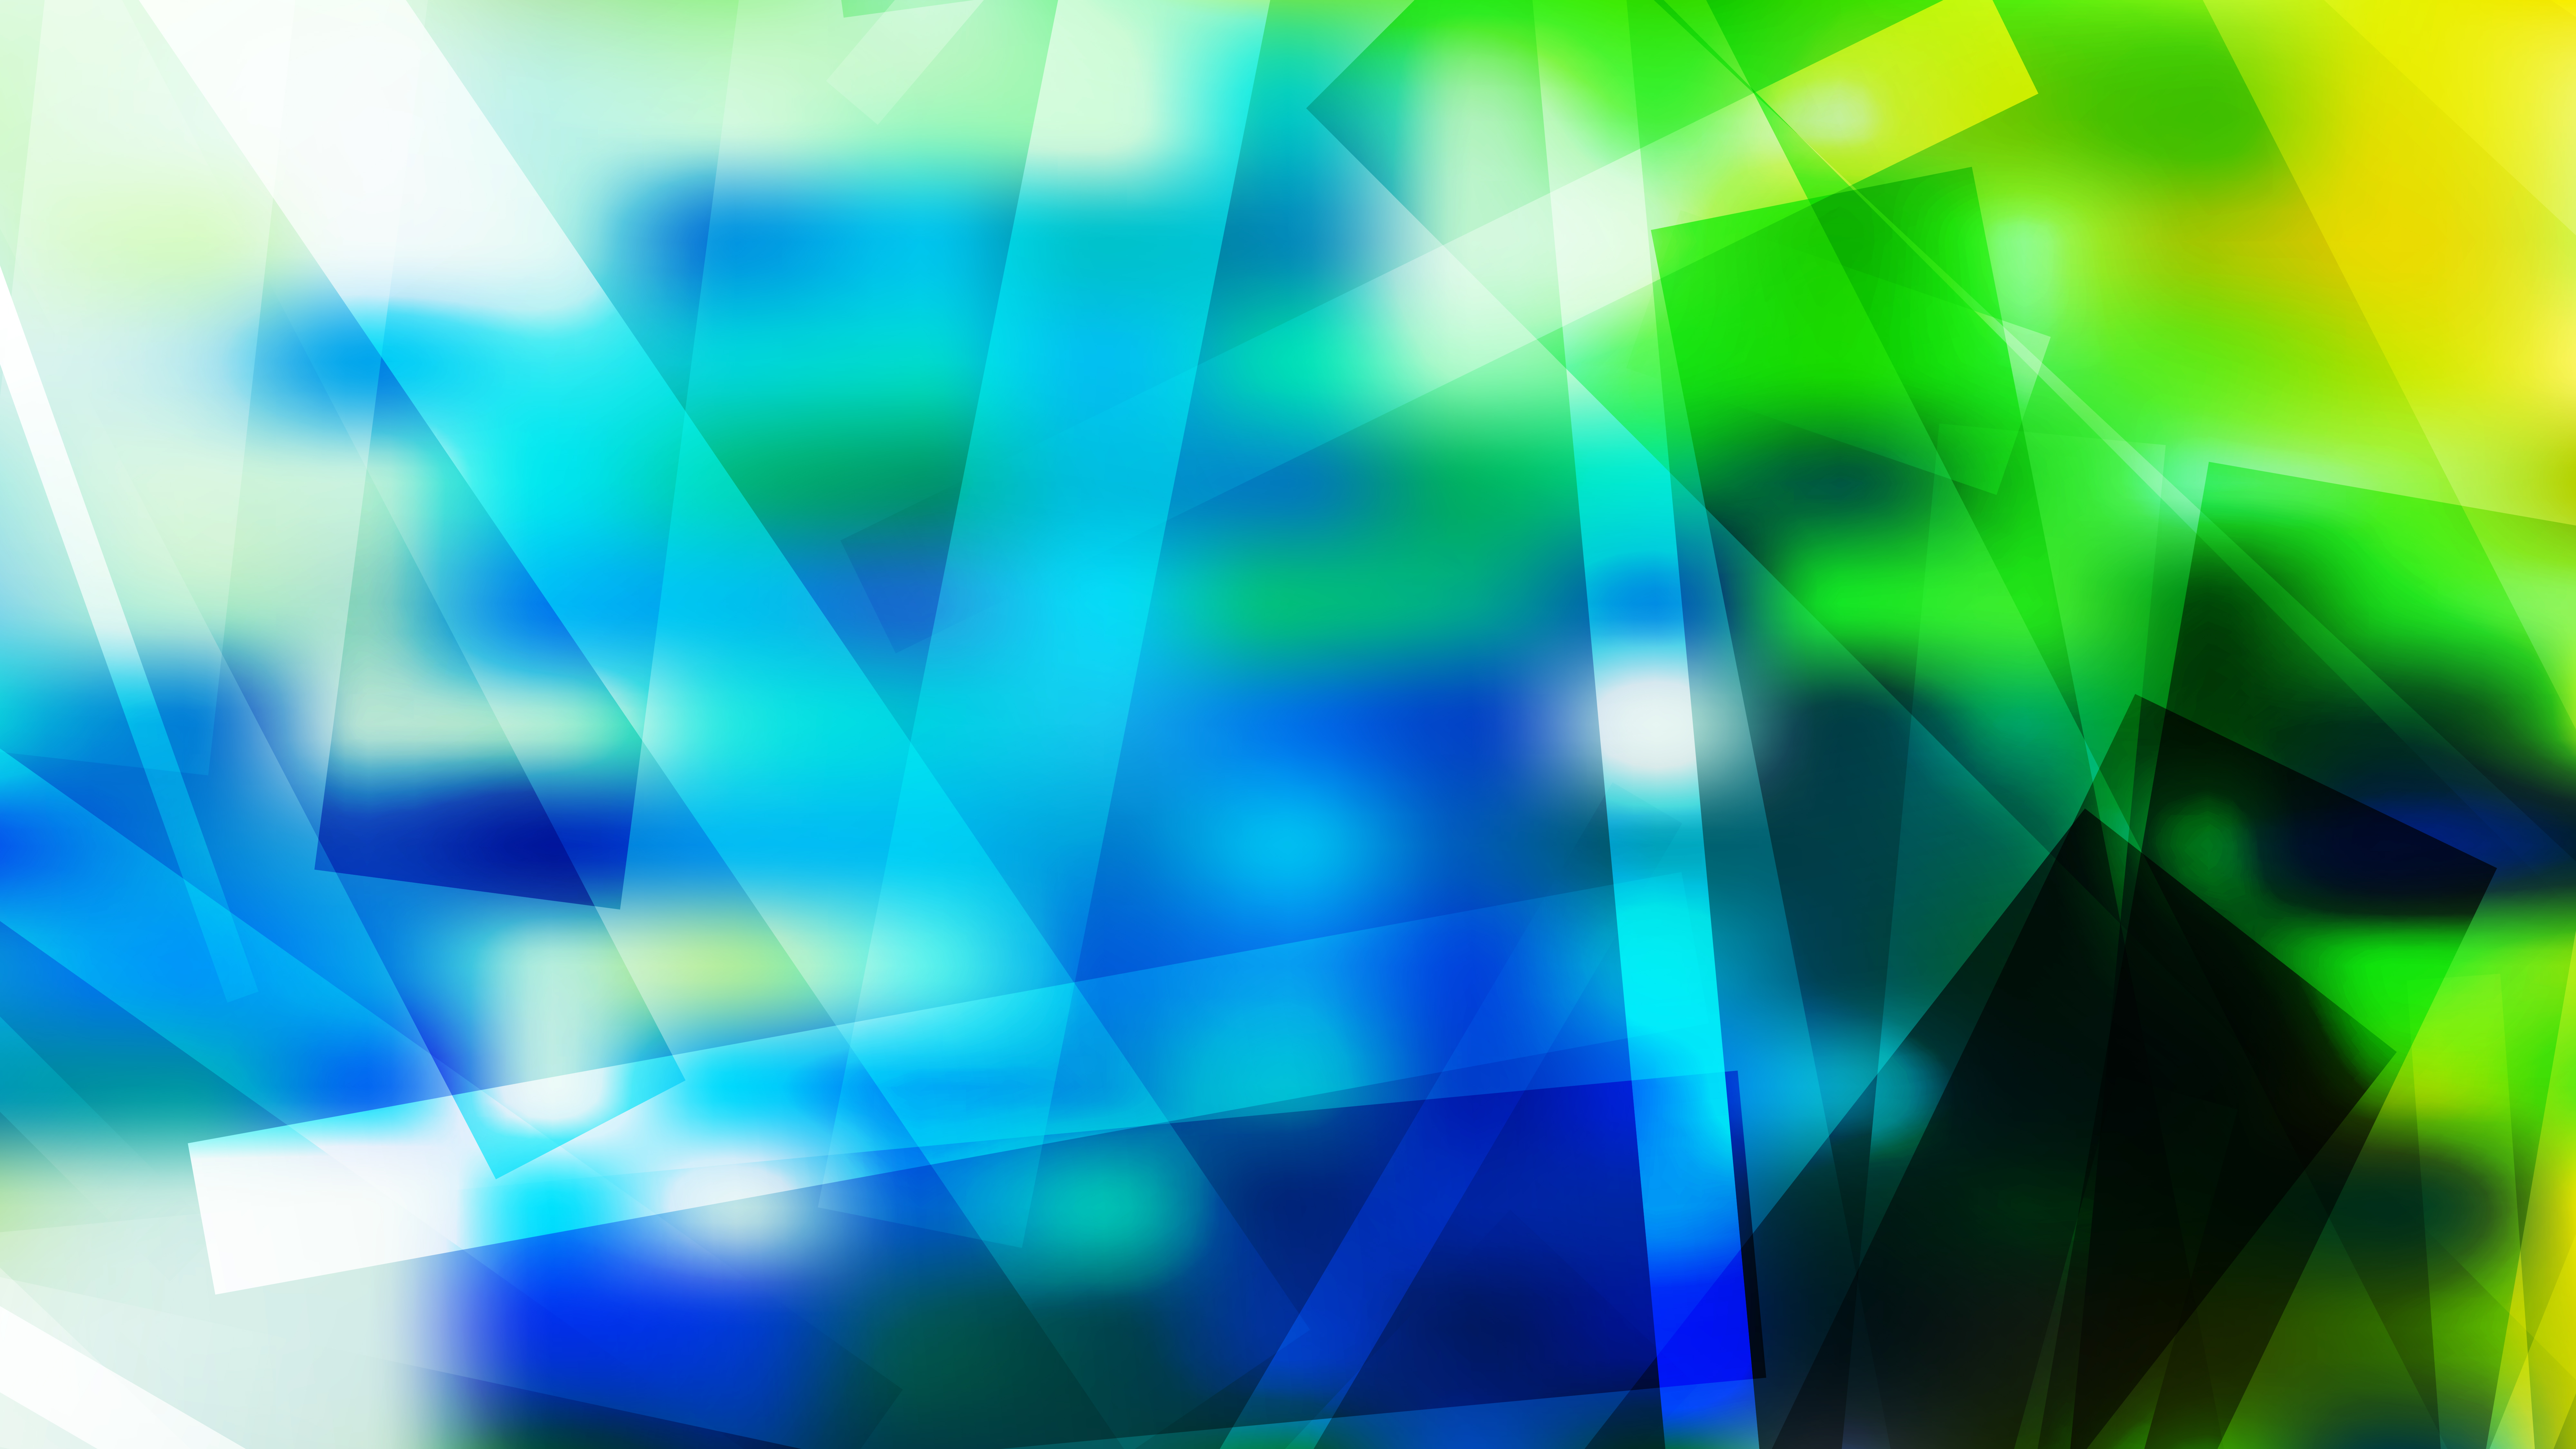 Geometric Abstract Blue Green And White Background Graphic